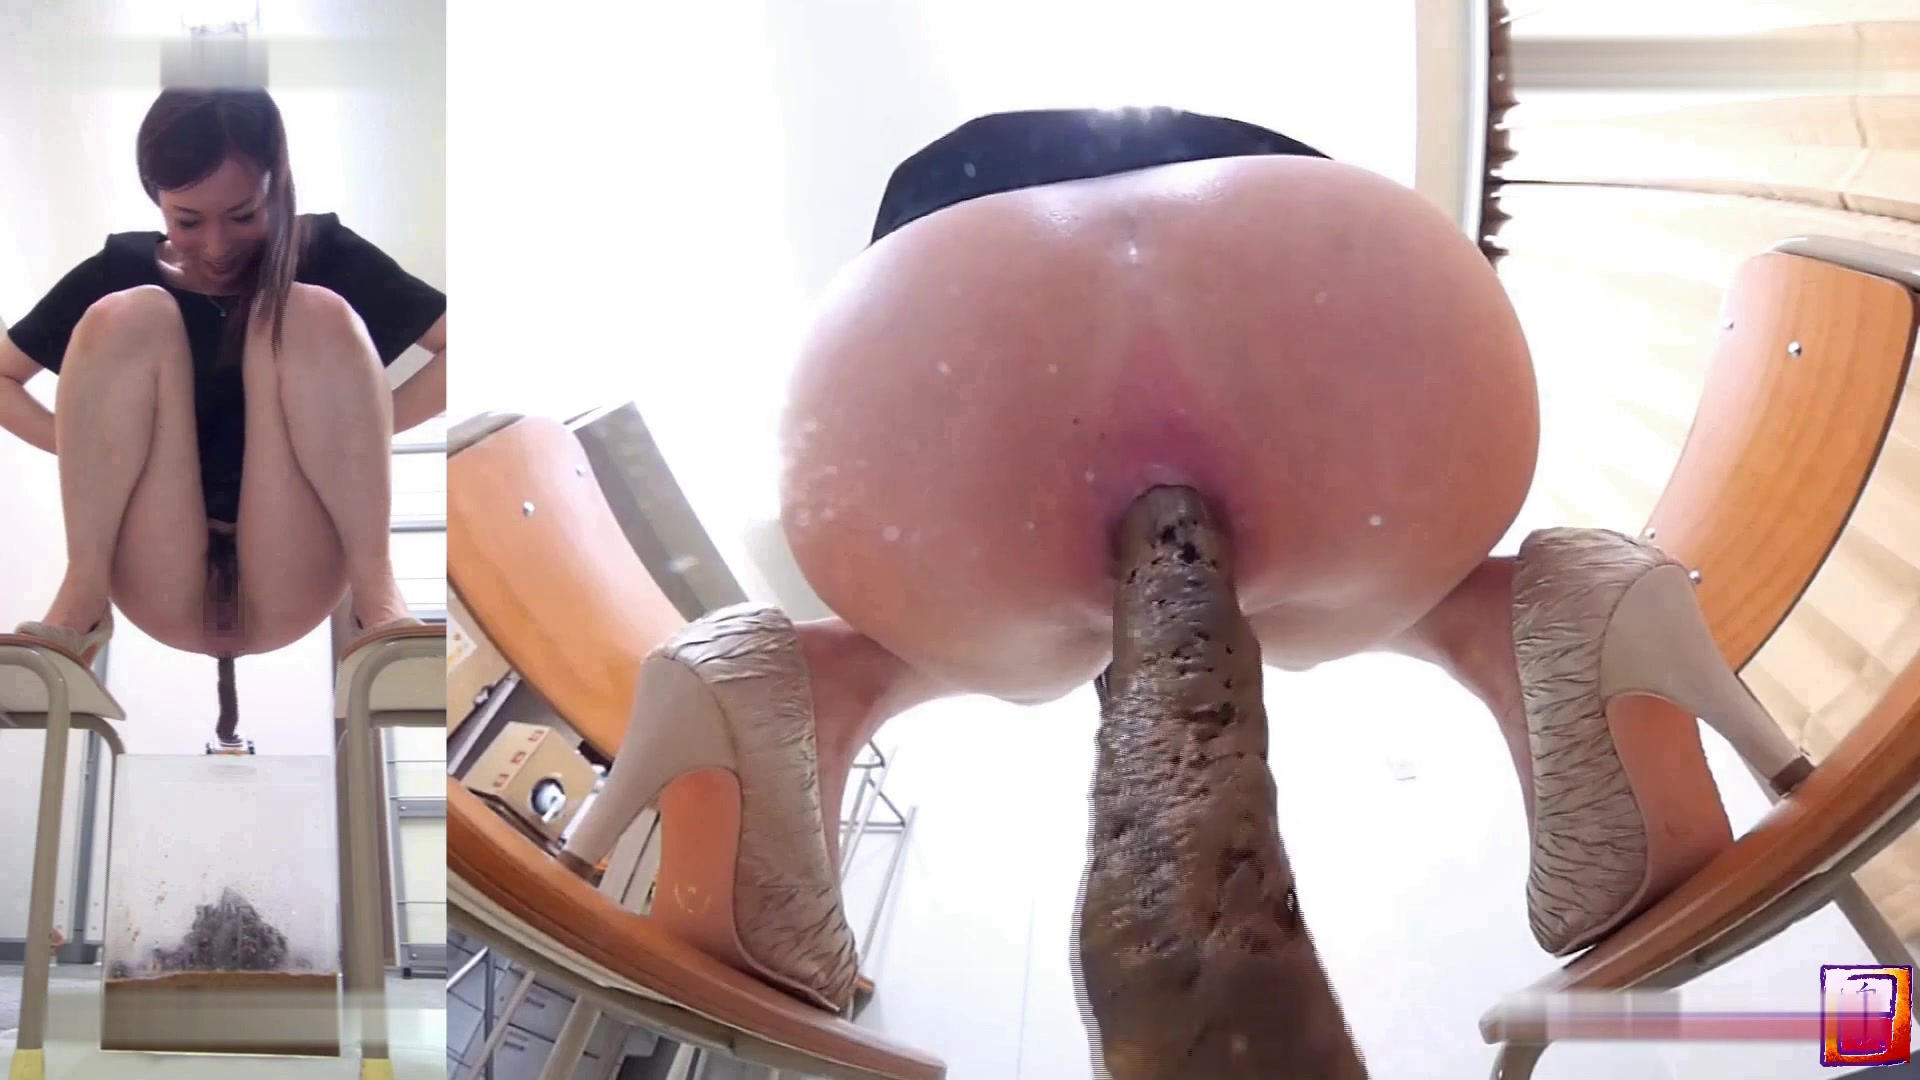 Free up close pissing dicks movies gay self 4